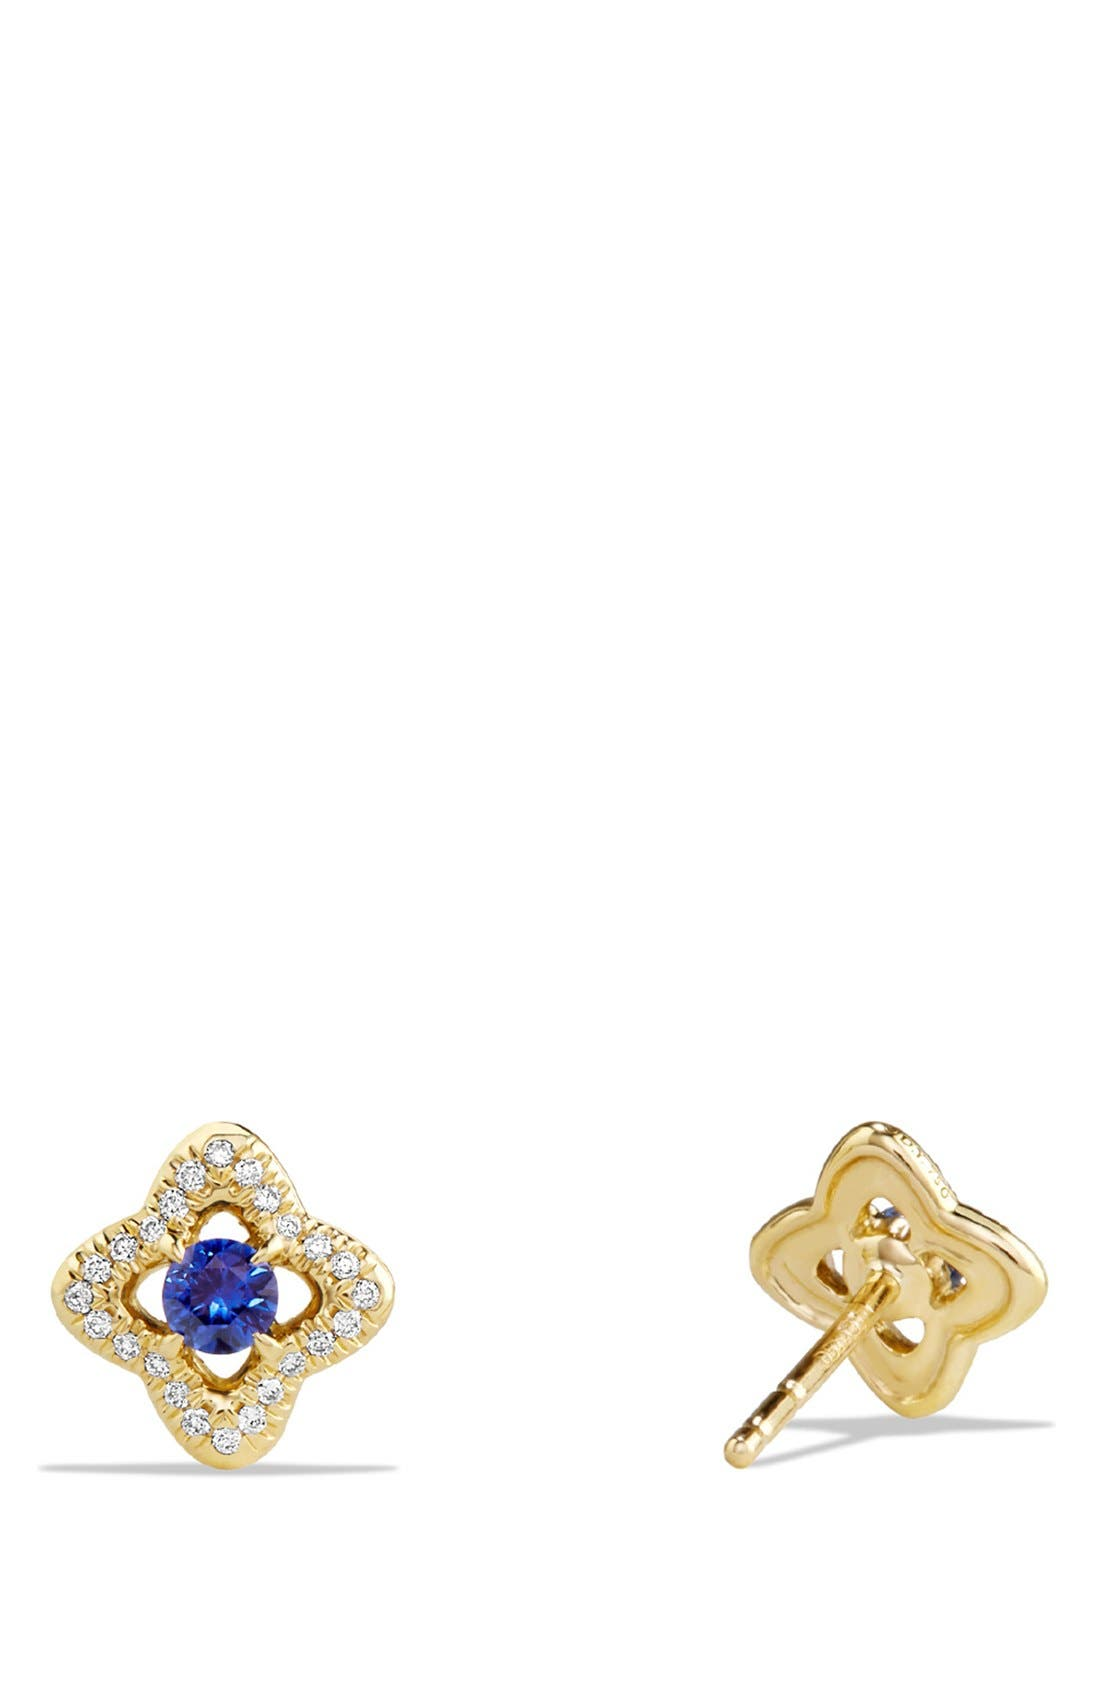 'Venetian Quatrefoil' Earrings with Precious Stones and Diamonds in 18K Gold,                             Alternate thumbnail 3, color,                             BLUE SAPPHIRE